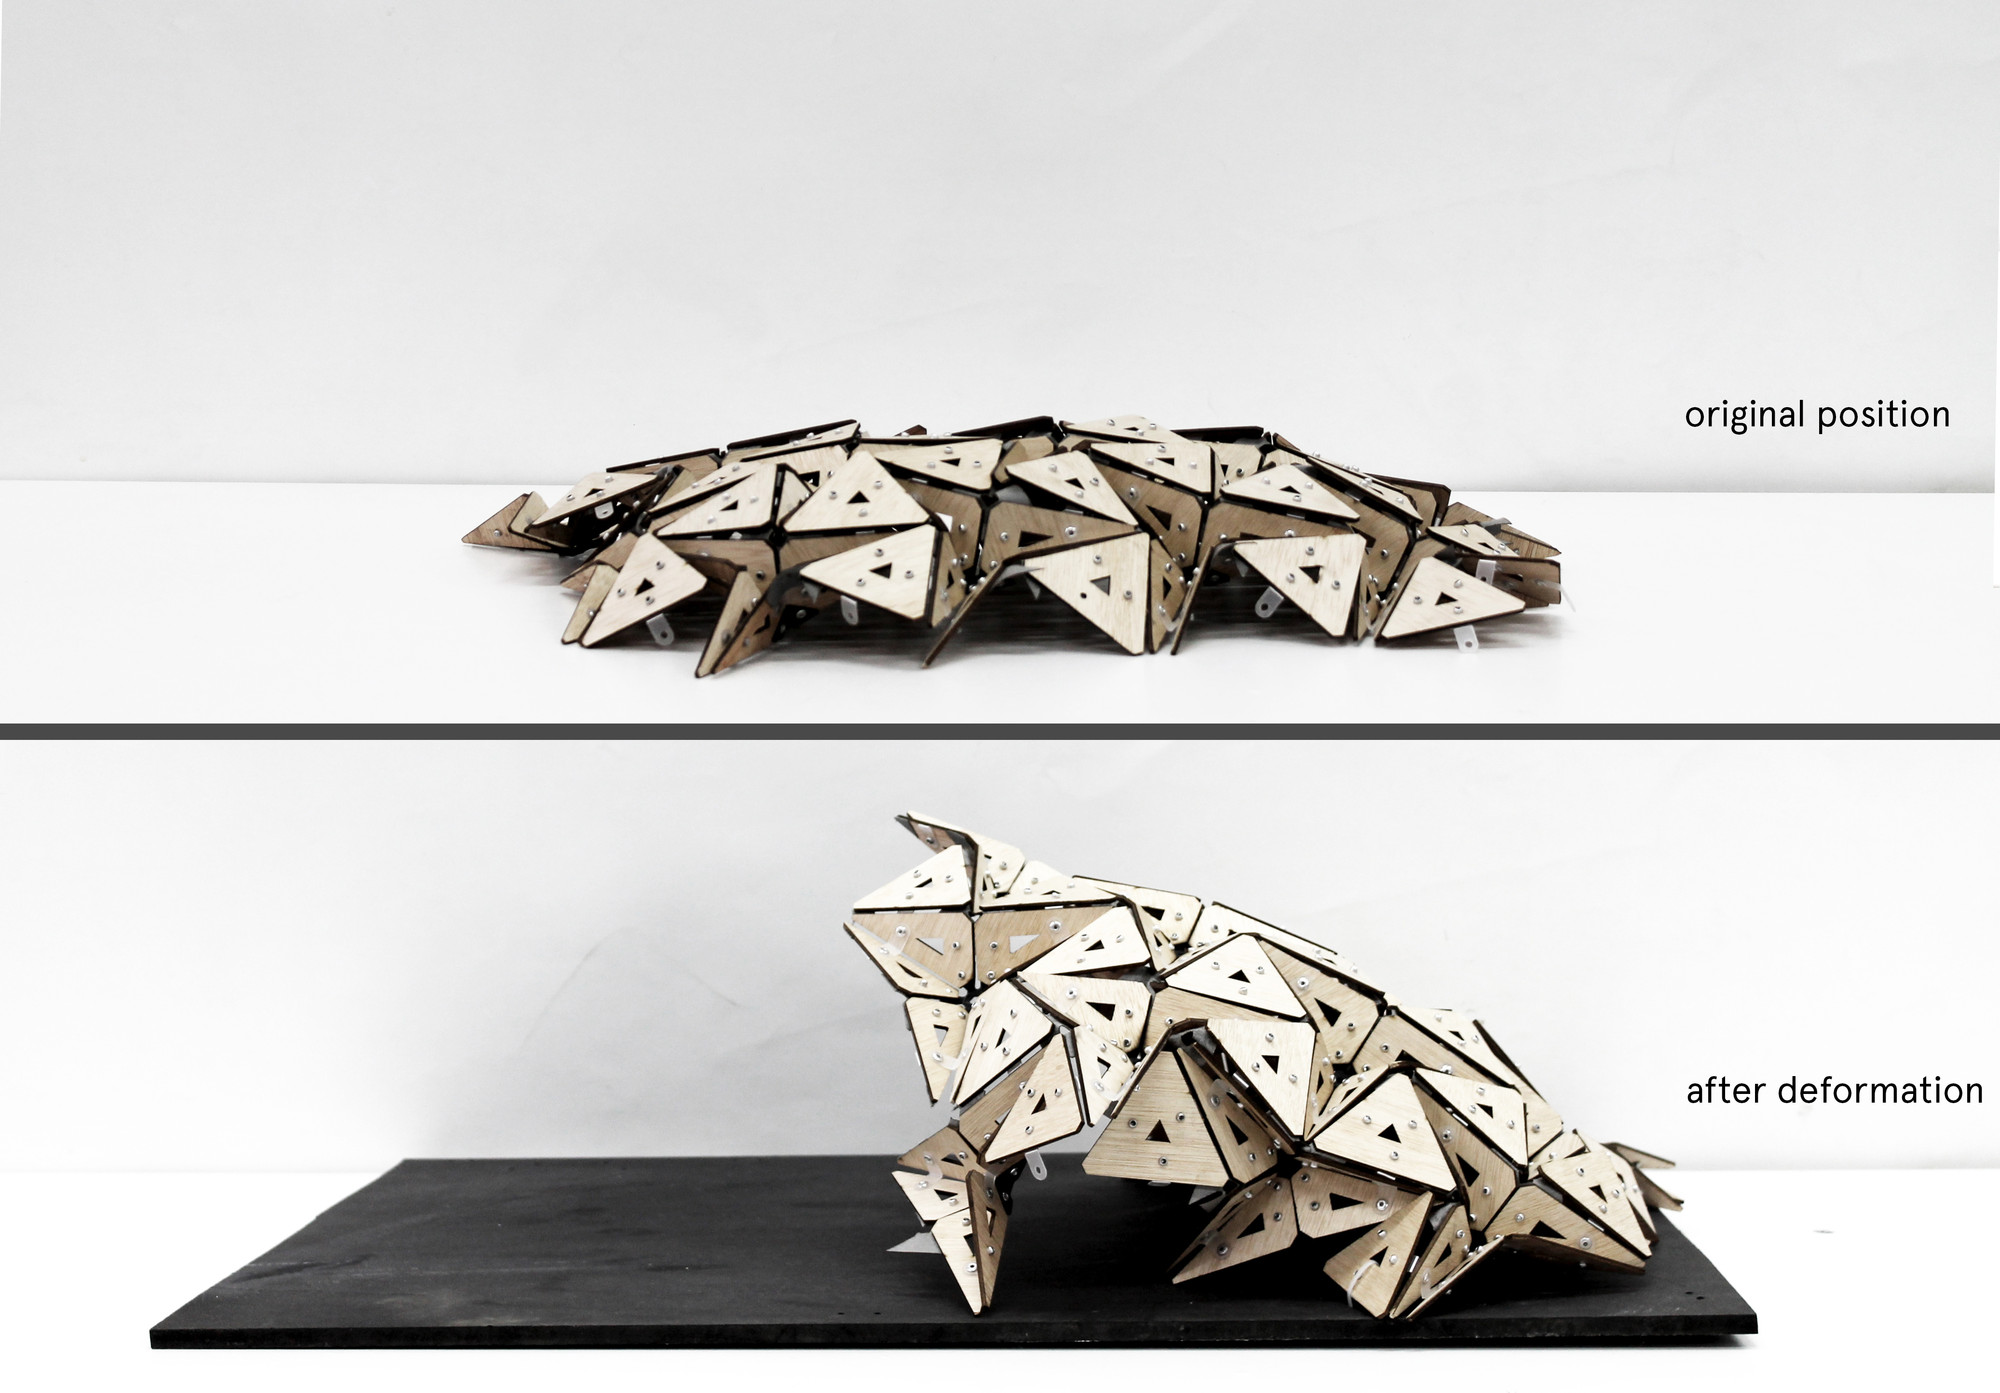 IaaC Students Develop Material System with Responsive Structural Joints, Courtesy of IaaC (Instituto de Aquitectura Avanzada de Catalunya), Ece Tankal, Efilena Baseta, Ramin Shambayati